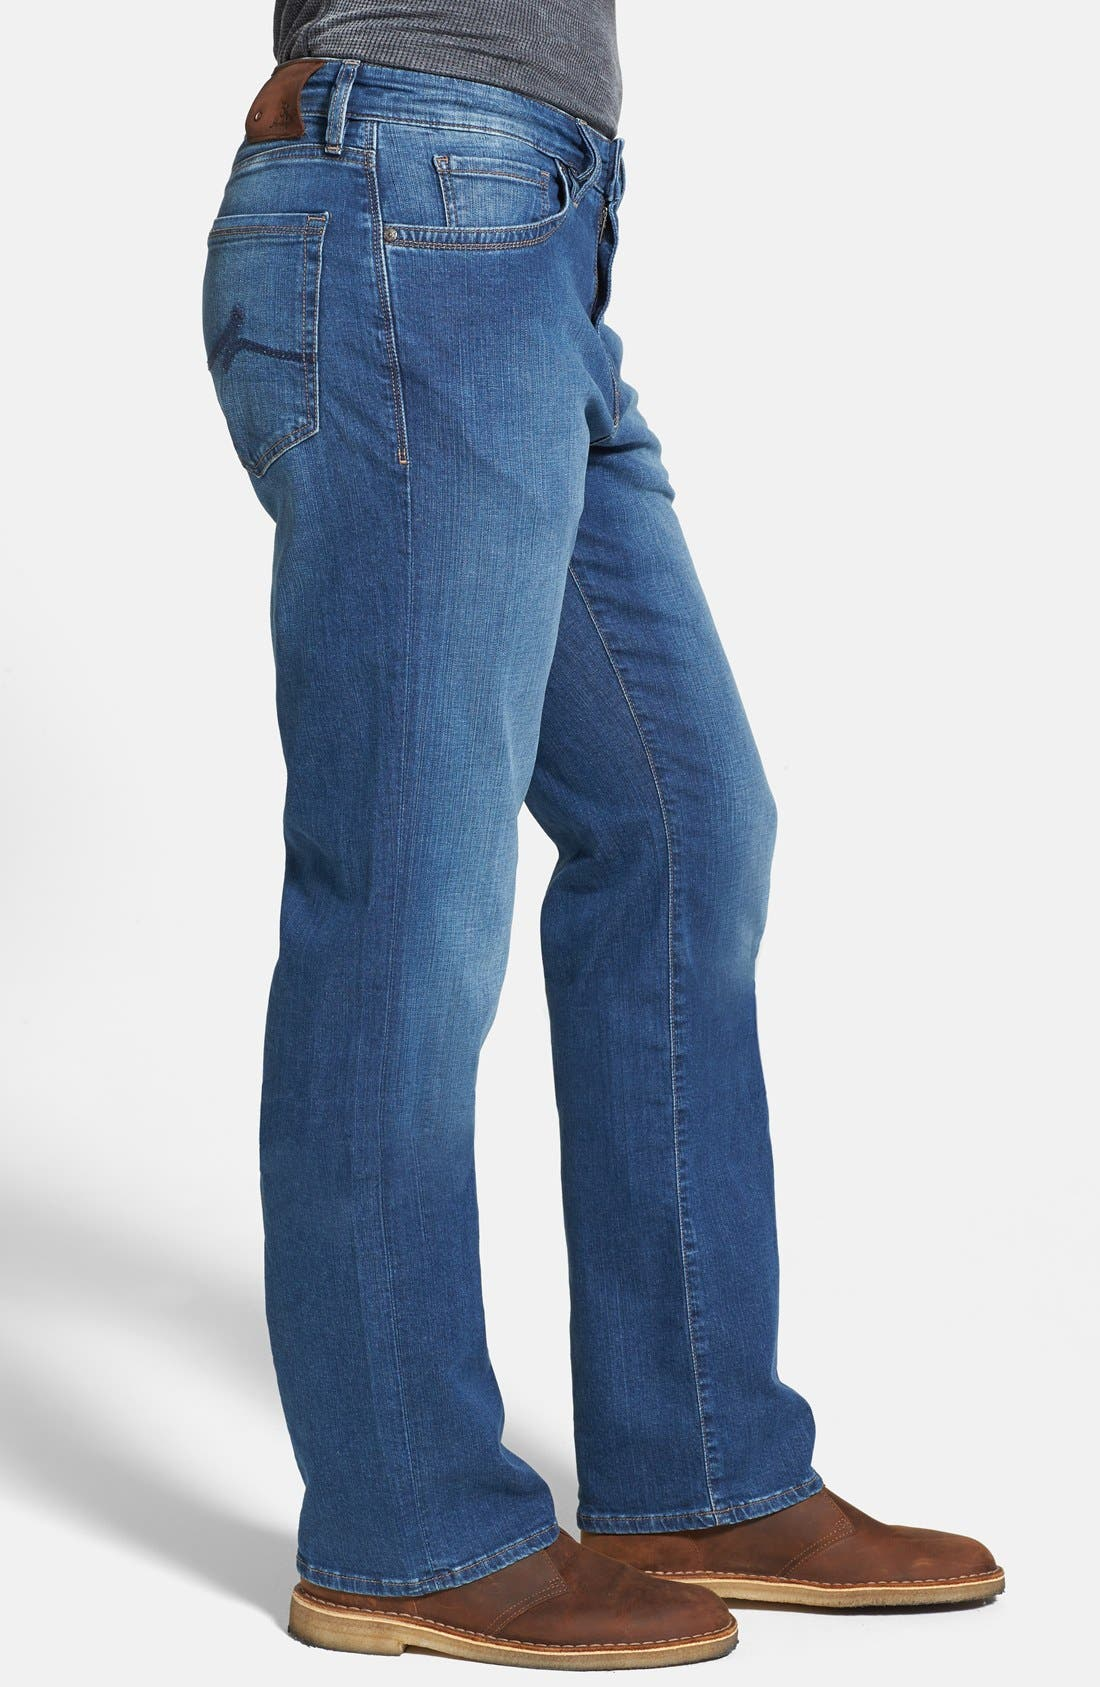 'Charisma' Classic Relaxed Fit Jeans,                             Alternate thumbnail 8, color,                             MID CASHMERE